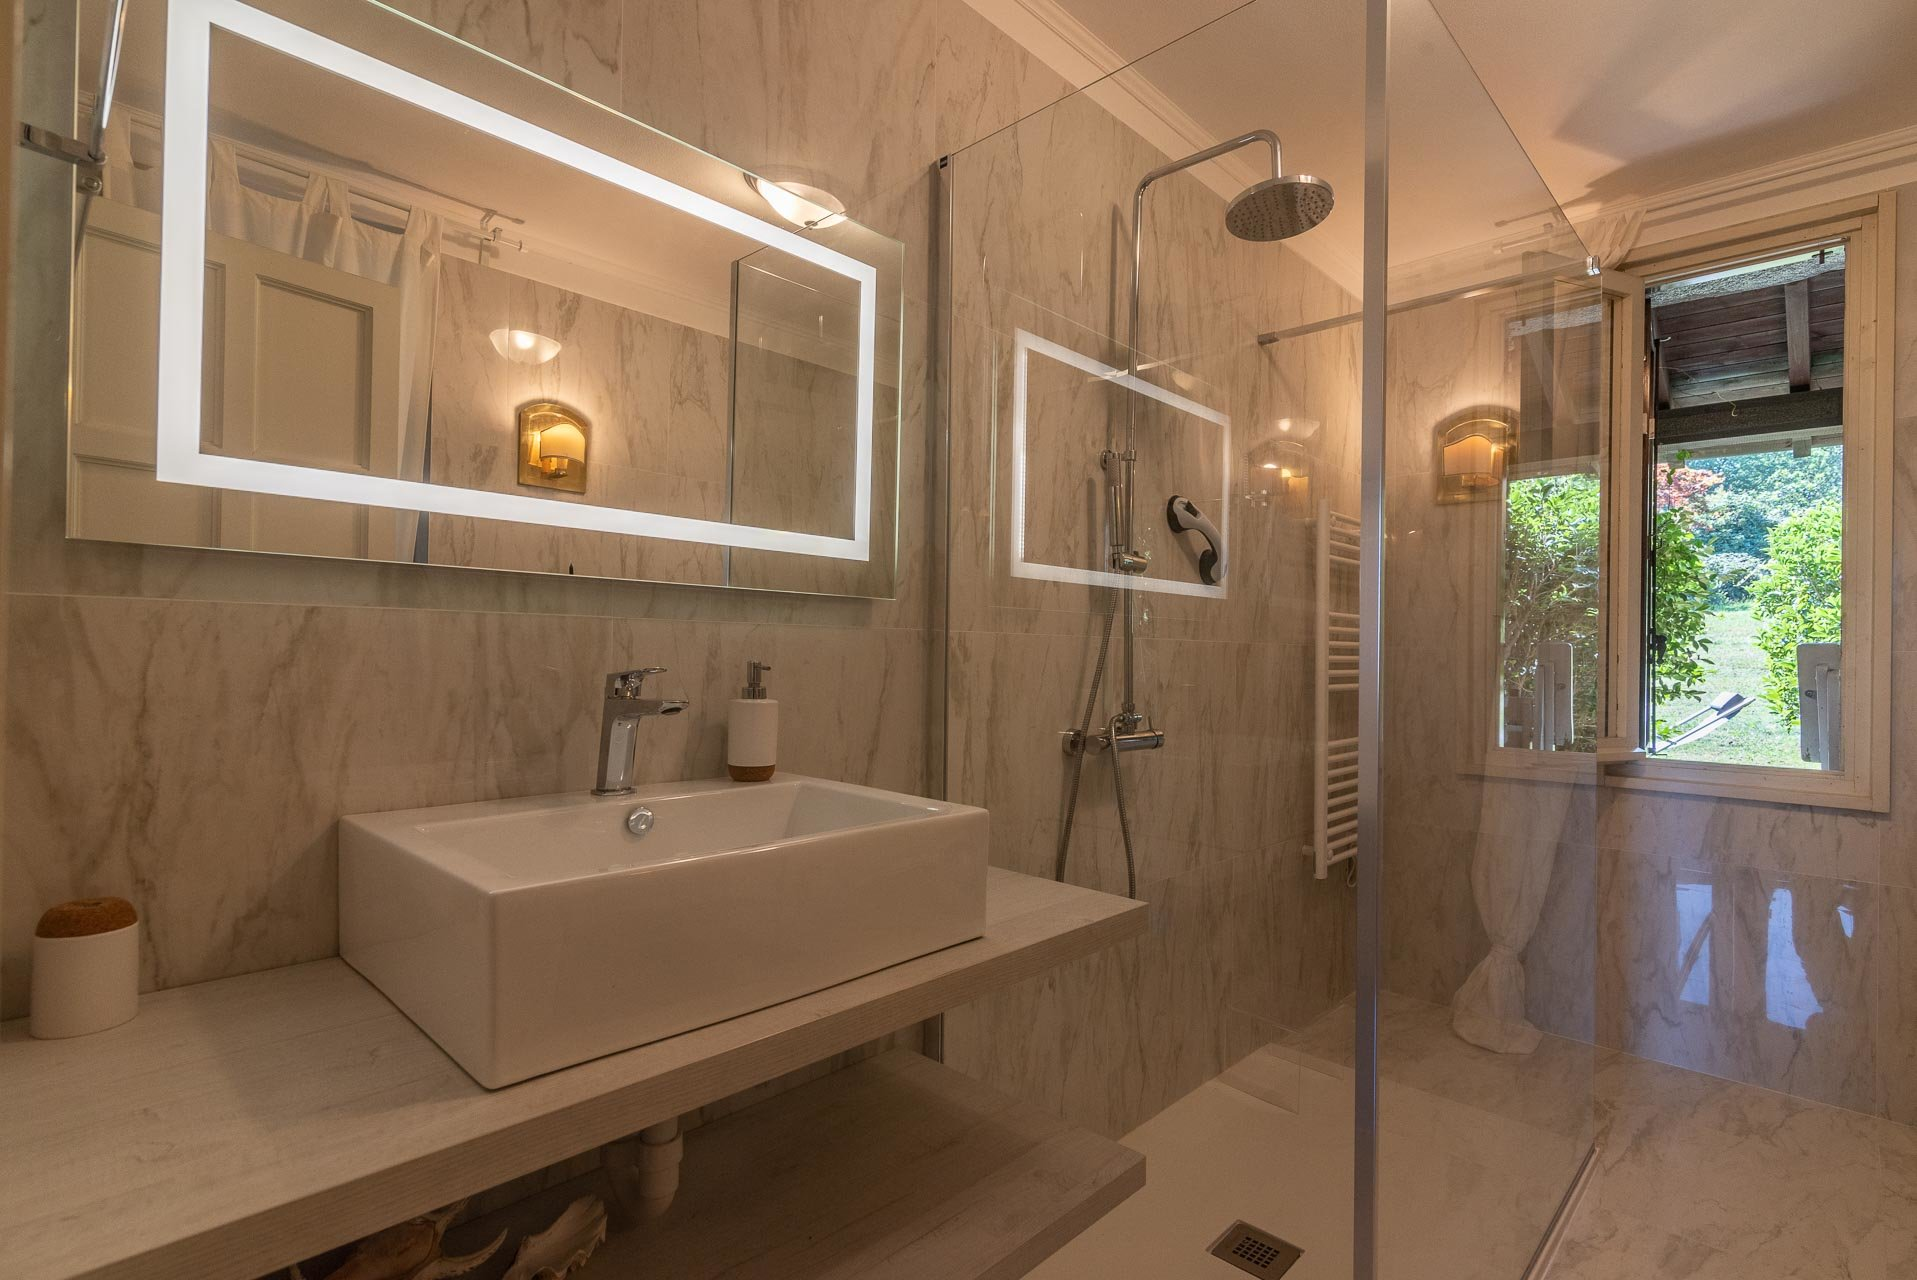 Villa with swimming pool for sale in Gignese - master bathroom with shower